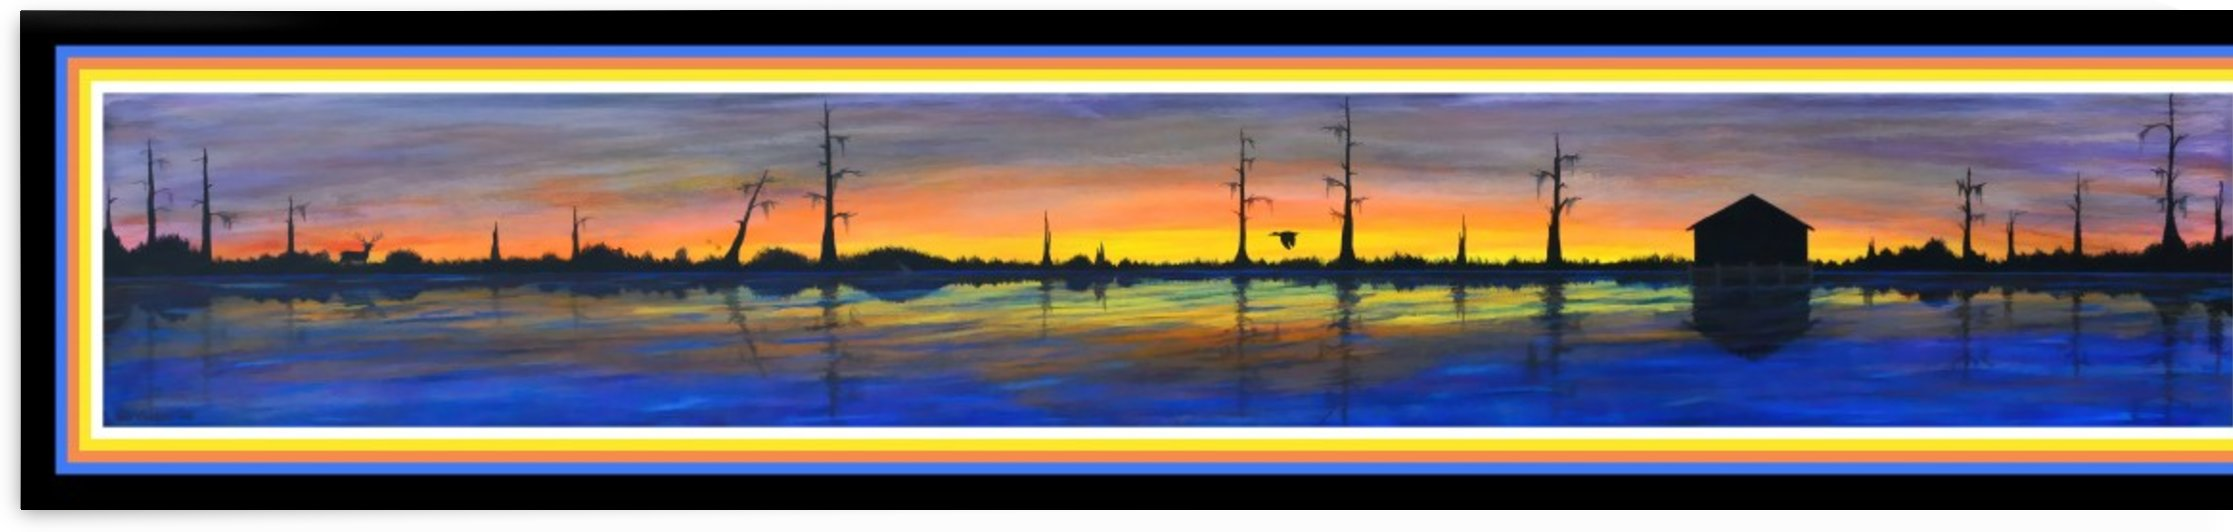 WINTER MARSH  III - ORIGINAL ACRYLIC by Digicam